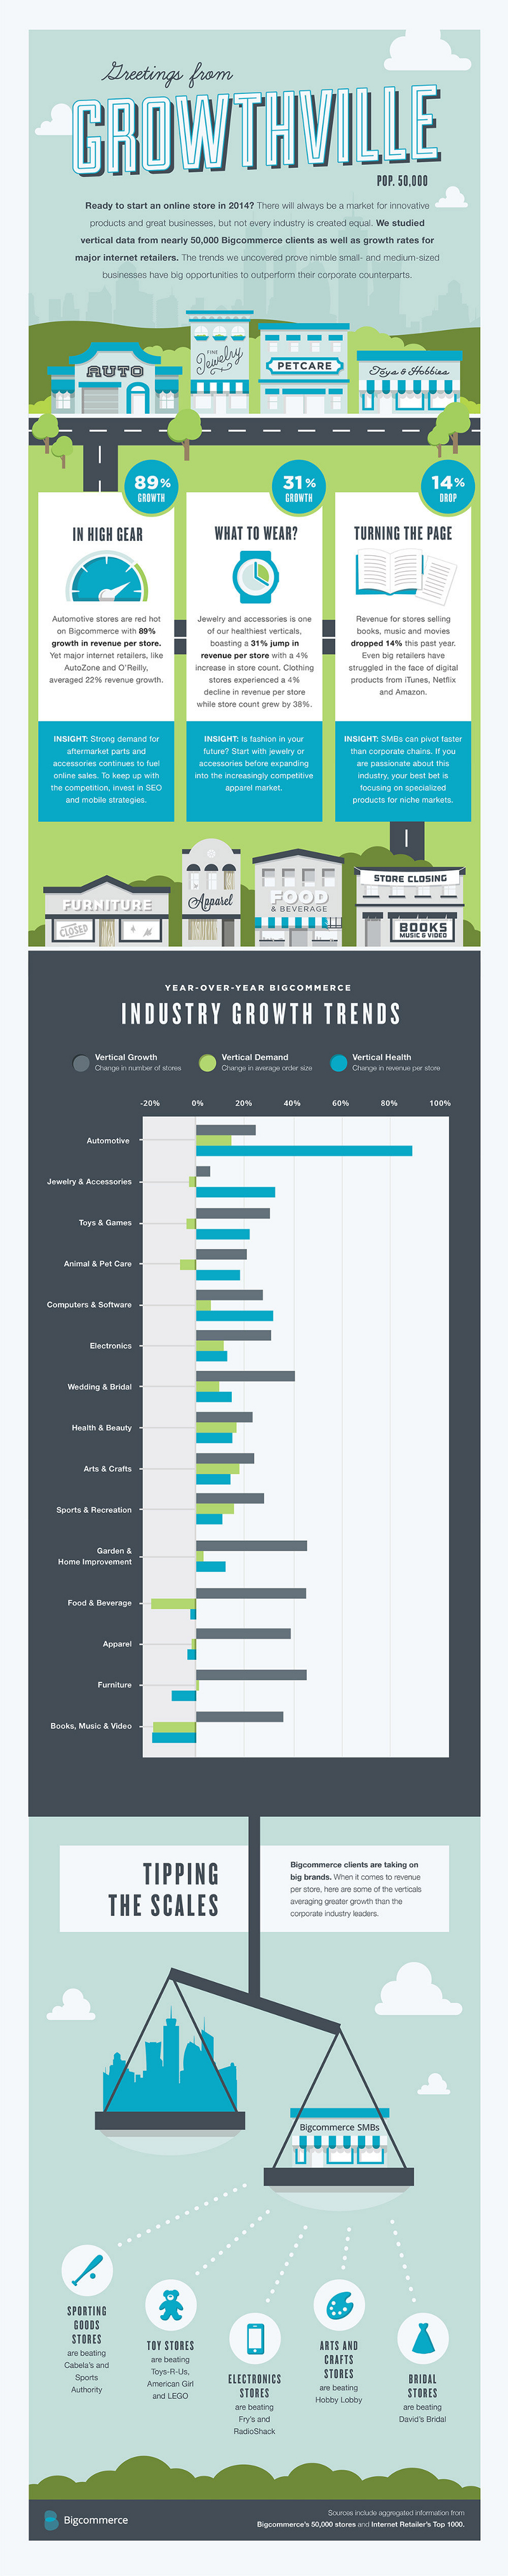 2014 Ecommerce Growth Trends